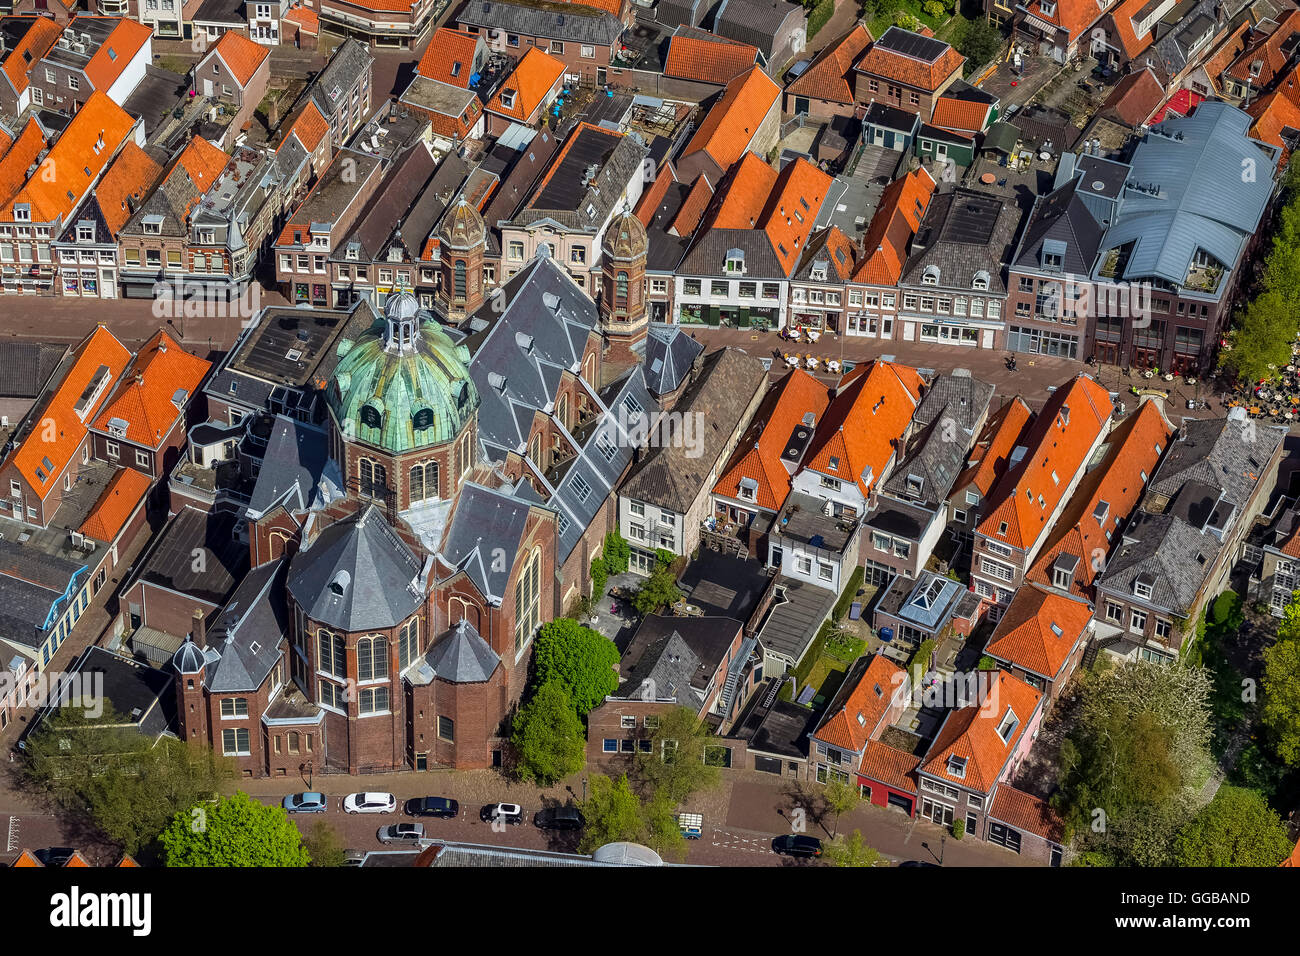 Aerial view, Hoorn at the Markermeer, inland waters, Hoorn, North Holland, Netherlands, Europe, Aerial view, birds - Stock Image